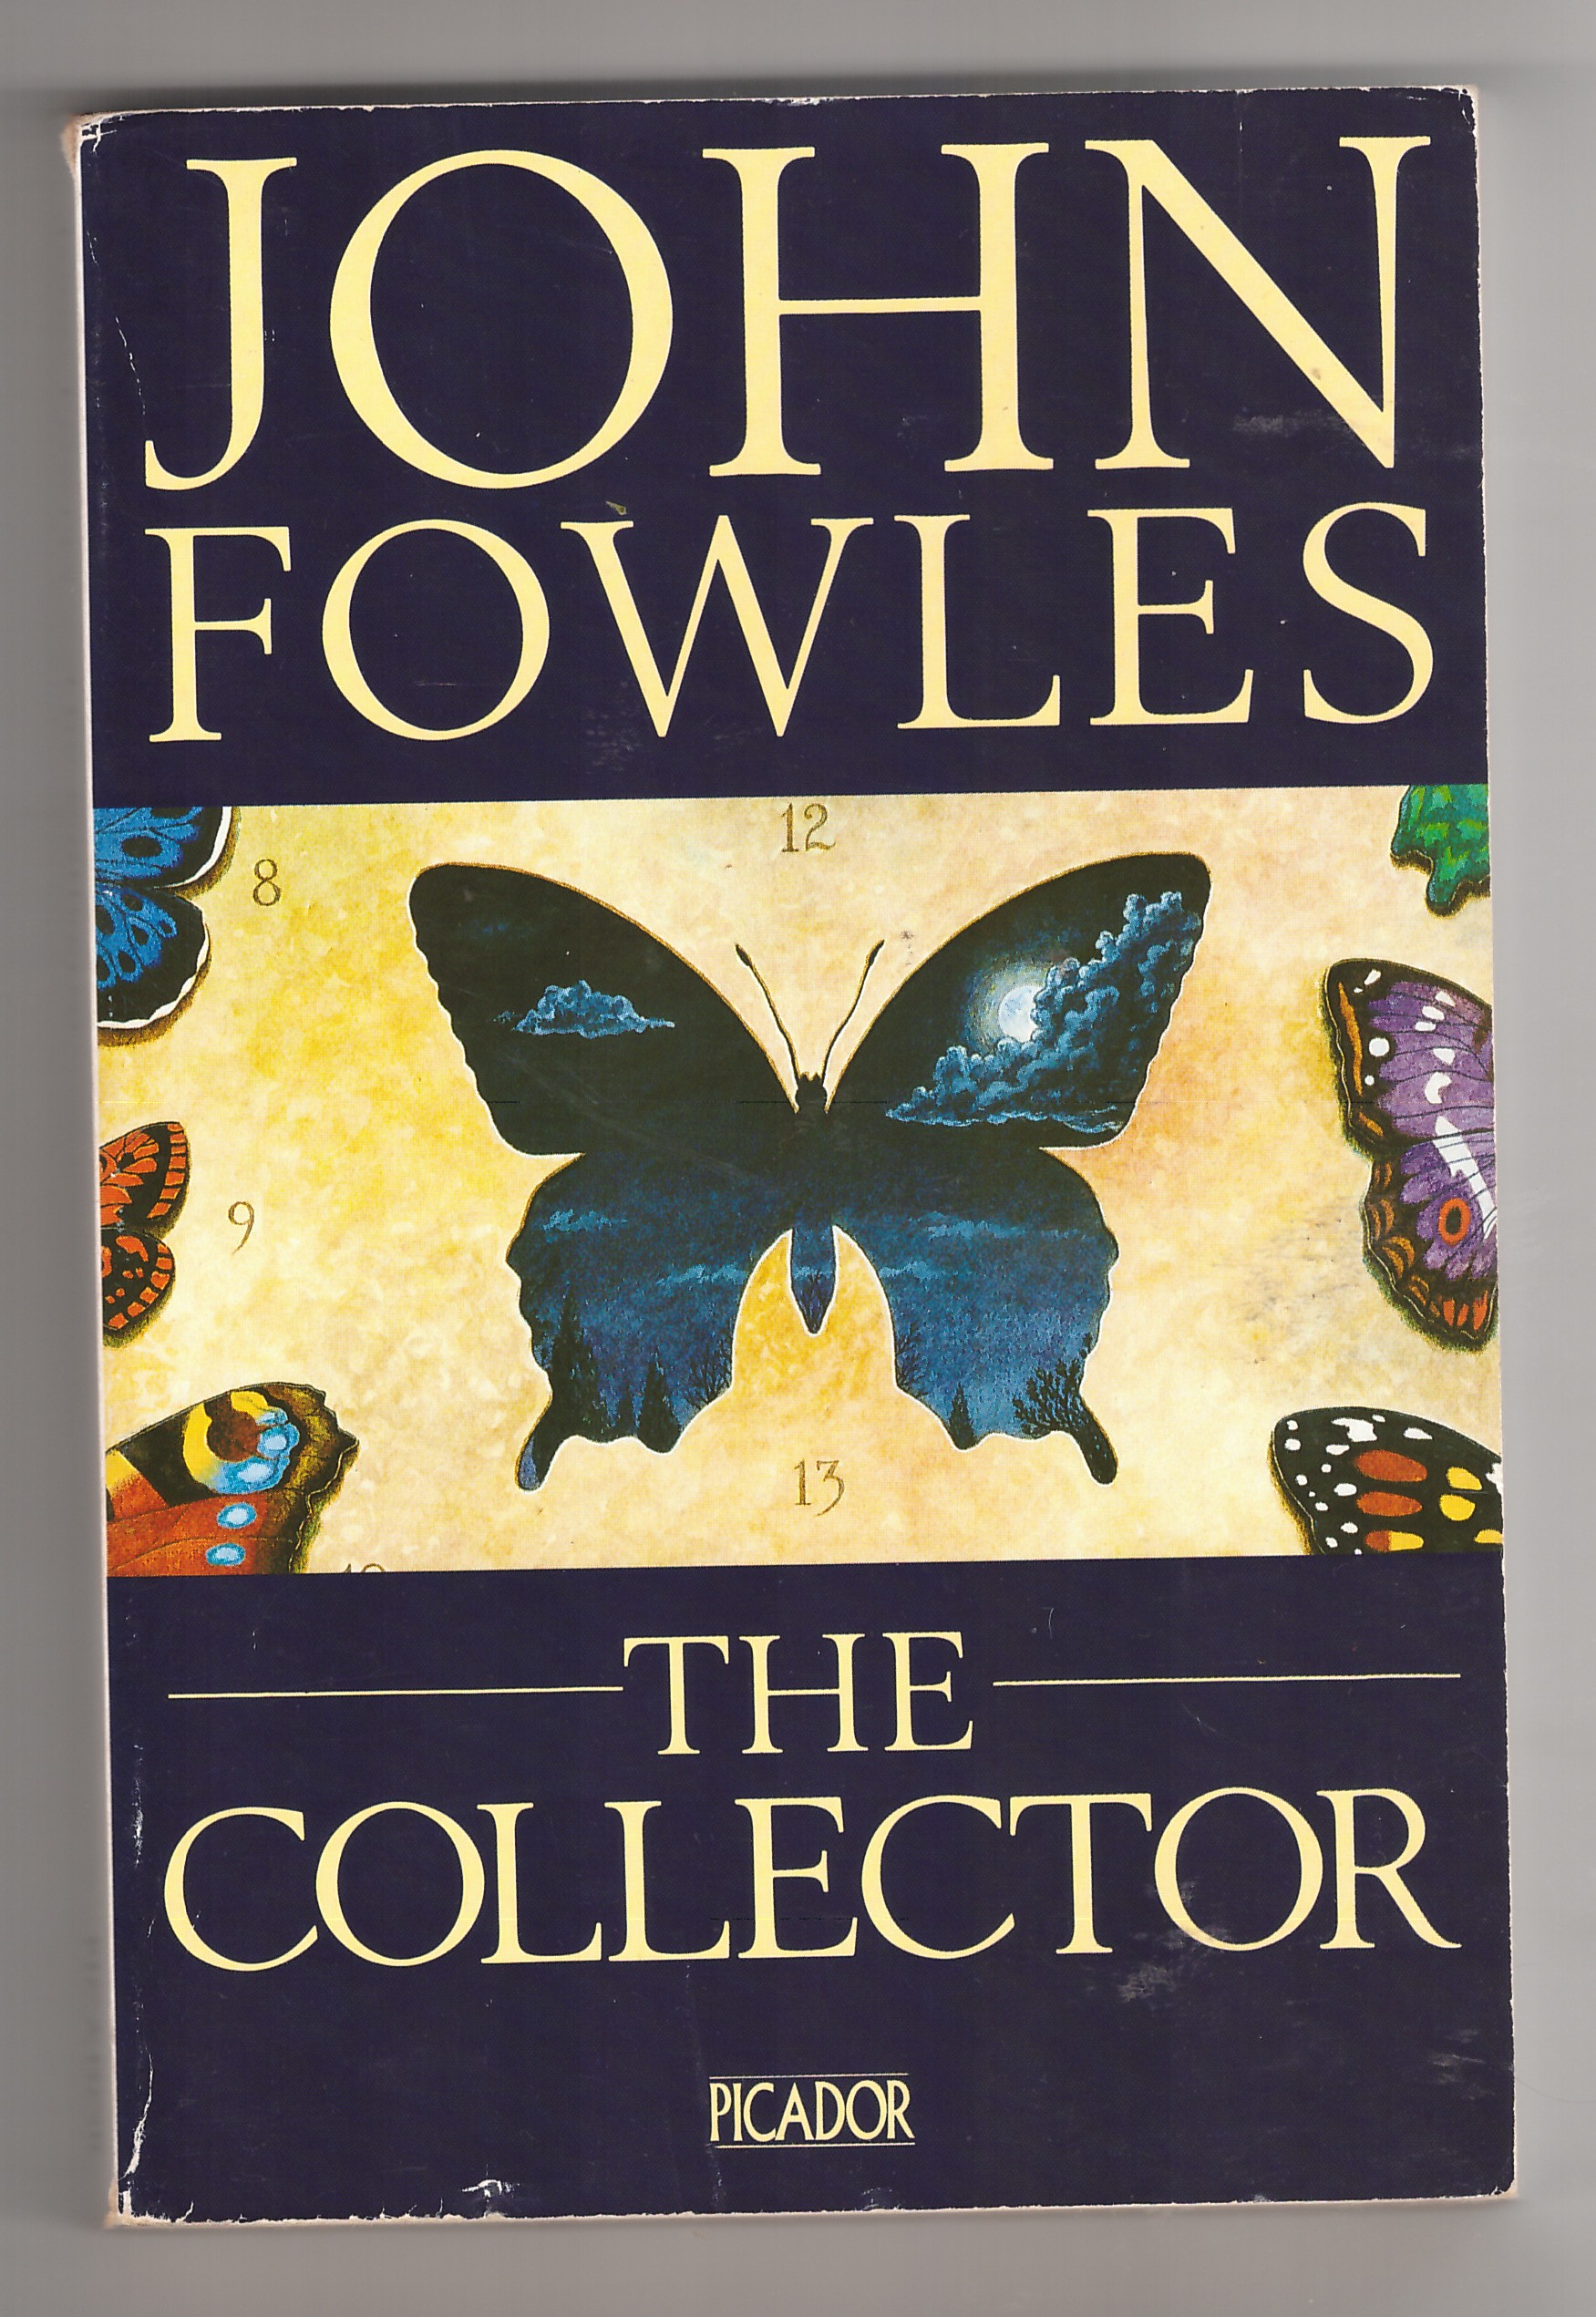 john fowles essay Disclaimer: this work has been submitted by a student this is not an example of the work written by our professional academic writers you can view samples of our professional work here any opinions, findings, conclusions or recommendations expressed in this material are those of the authors and.